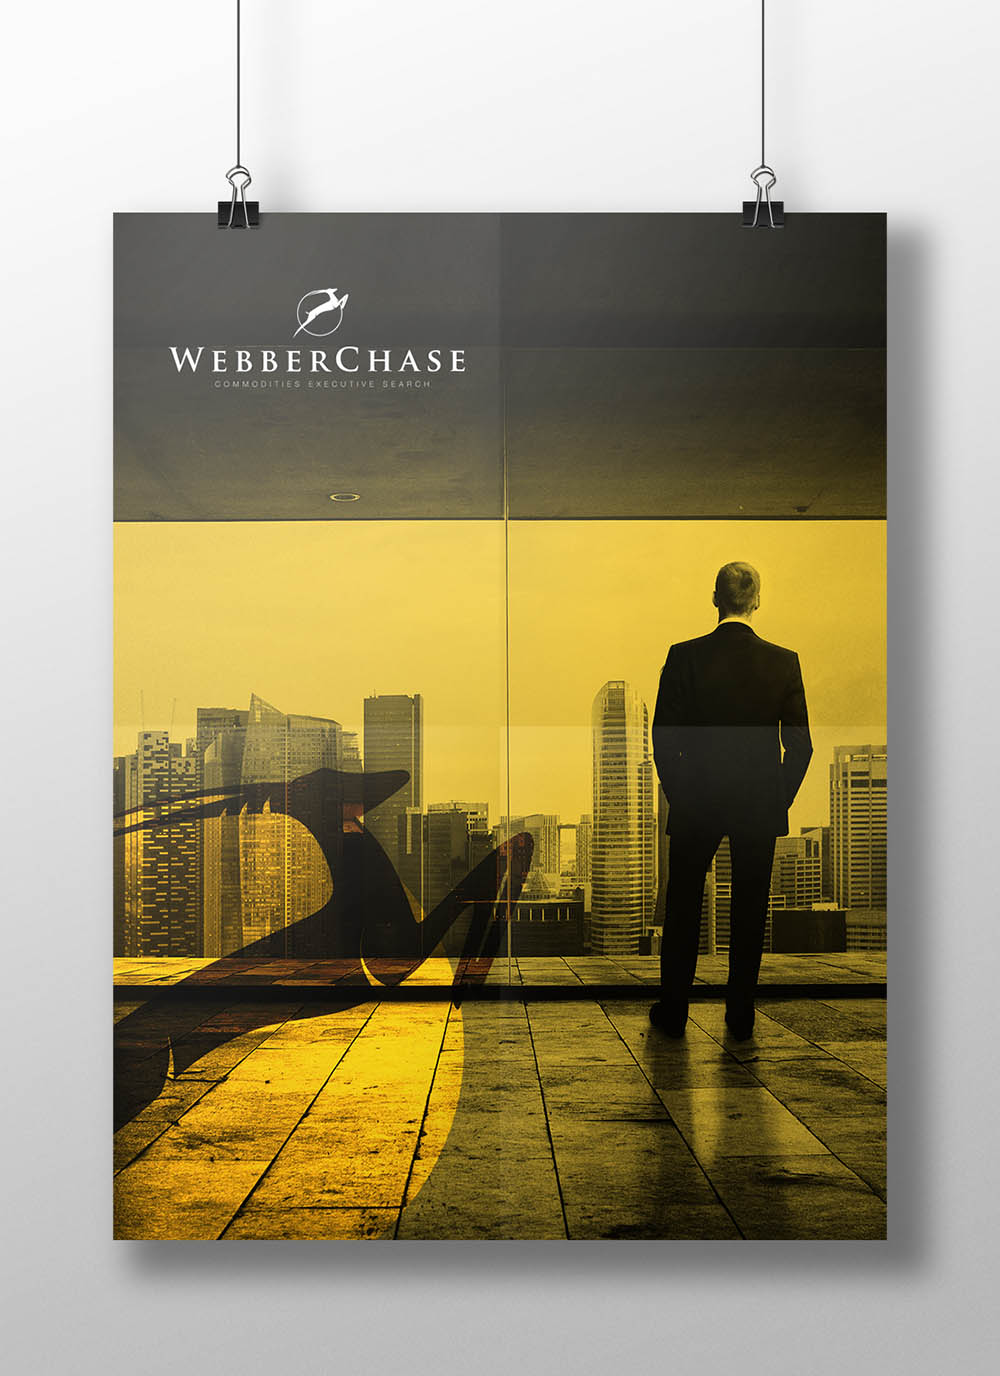 webberbrand poster, Webber Chase, brand identity, Form Advertising, brand creation, logo, branding, advertising, poster